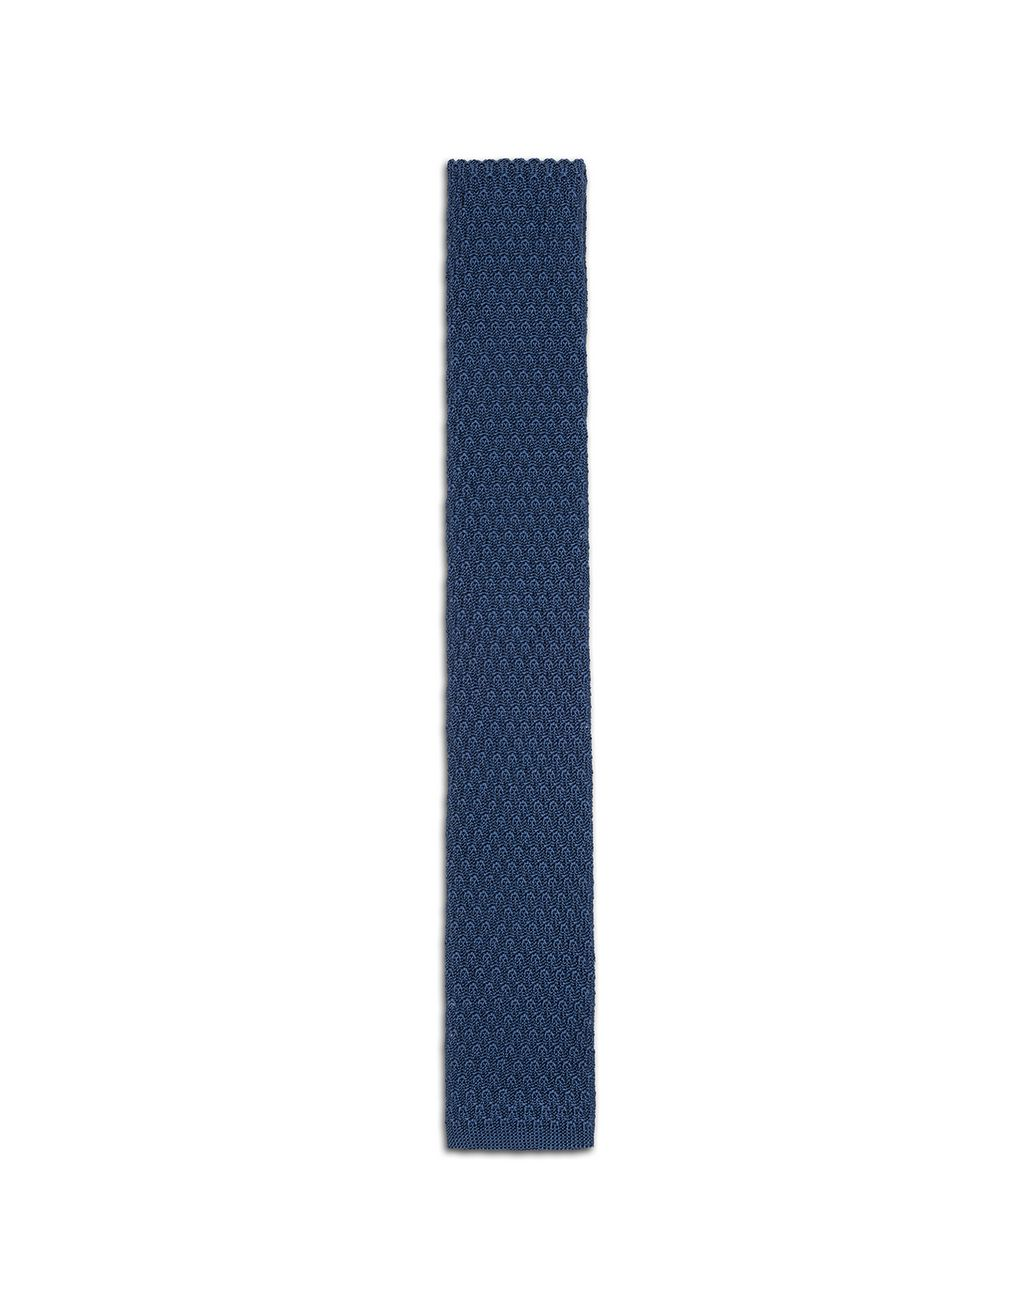 BRIONI Bluette Knitted Tie Tie & Pocket Square Man f